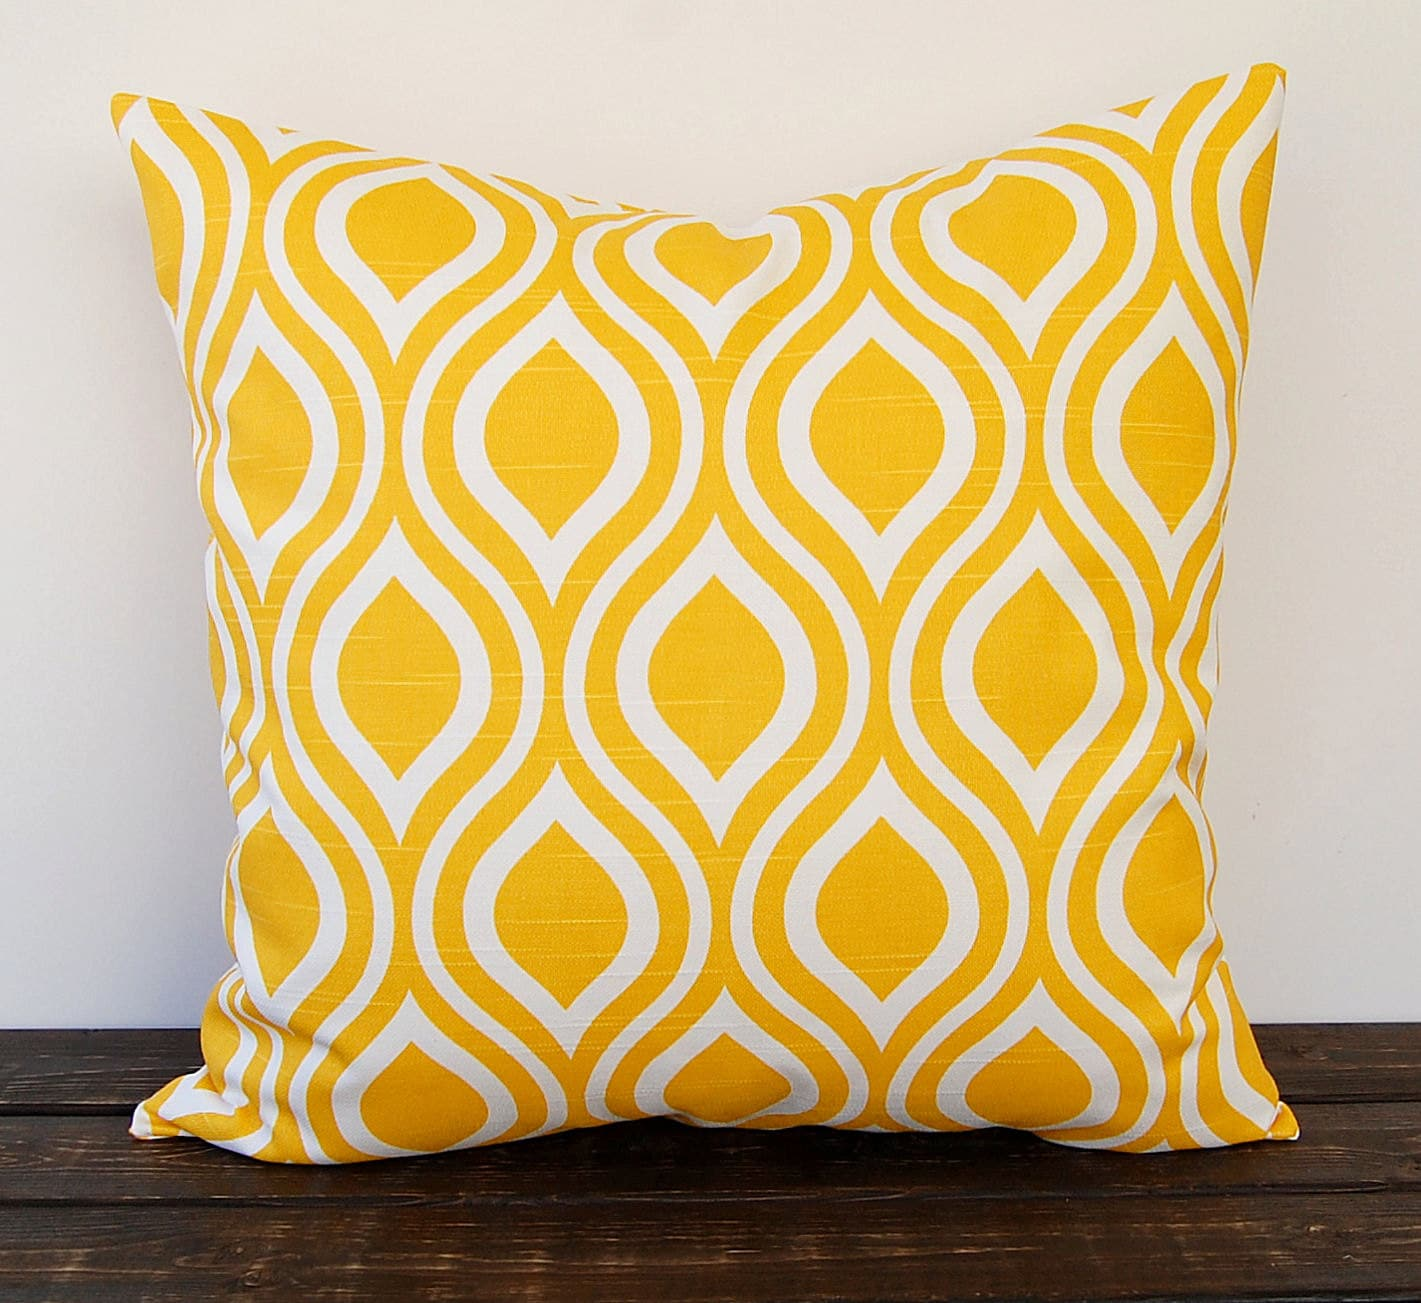 pack sofa x inches yellow modern throw for amazon canvas pillow couch slp cases of sides pillows figure home calitime covers com geometric decor both